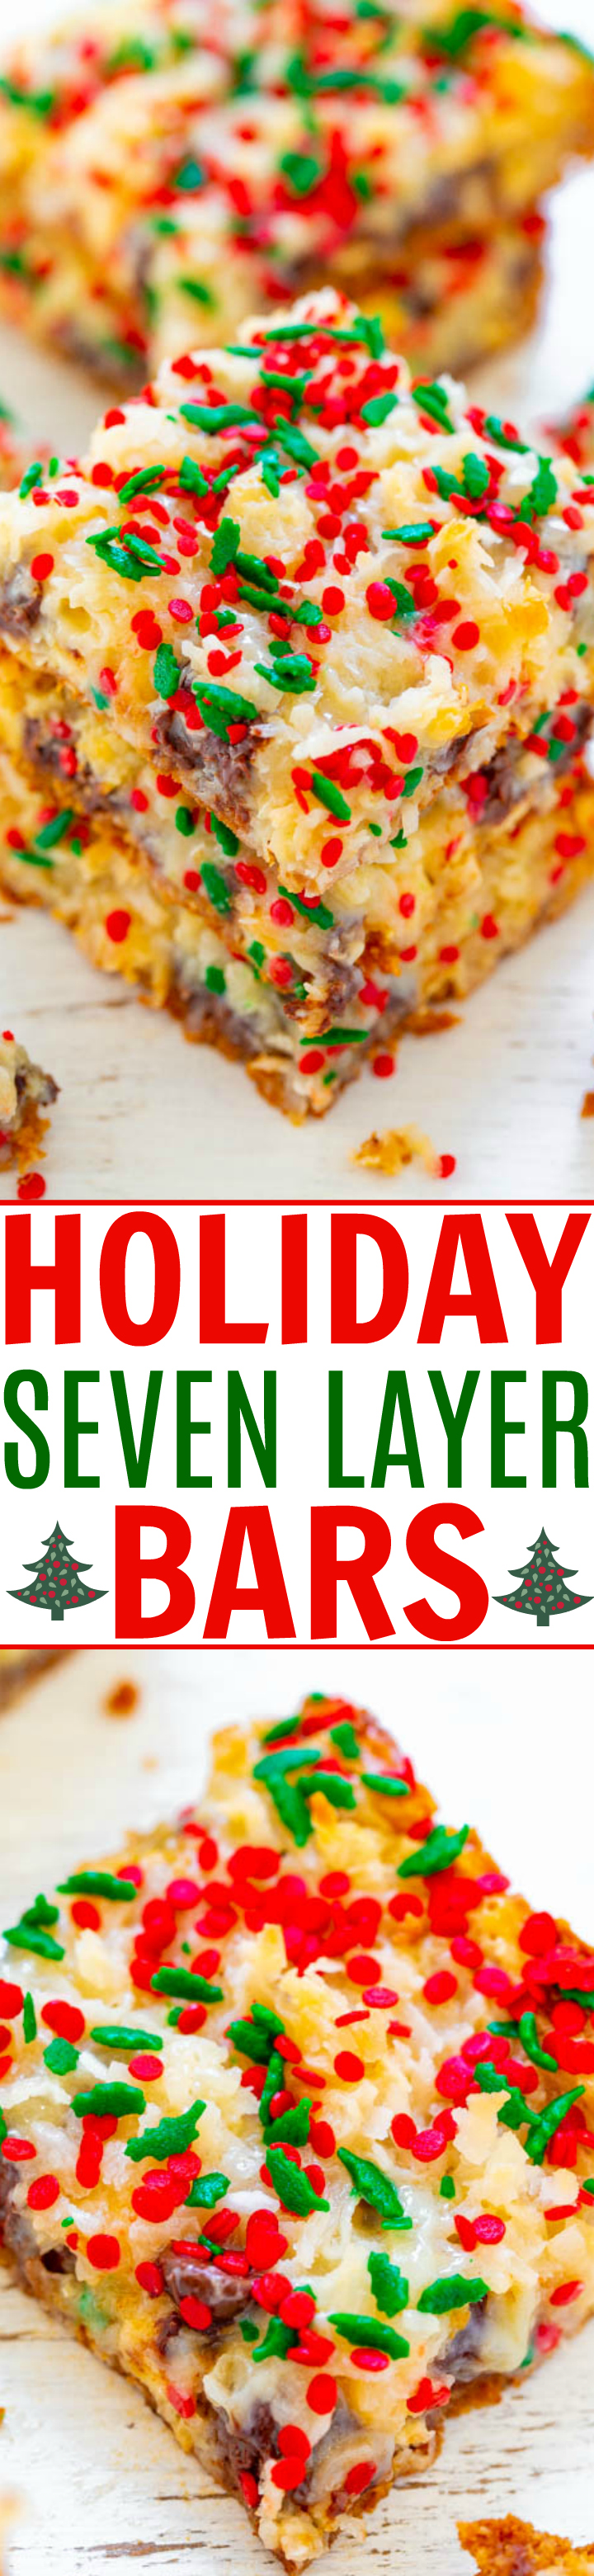 Holiday Seven Layer Bars - Soft, ultra chewy, and loaded with chocolate chips, shredded coconut, sprinkles, and more!! A FAST and EASY holiday recipe that's great for hostess gifts or cookie exchanges!!